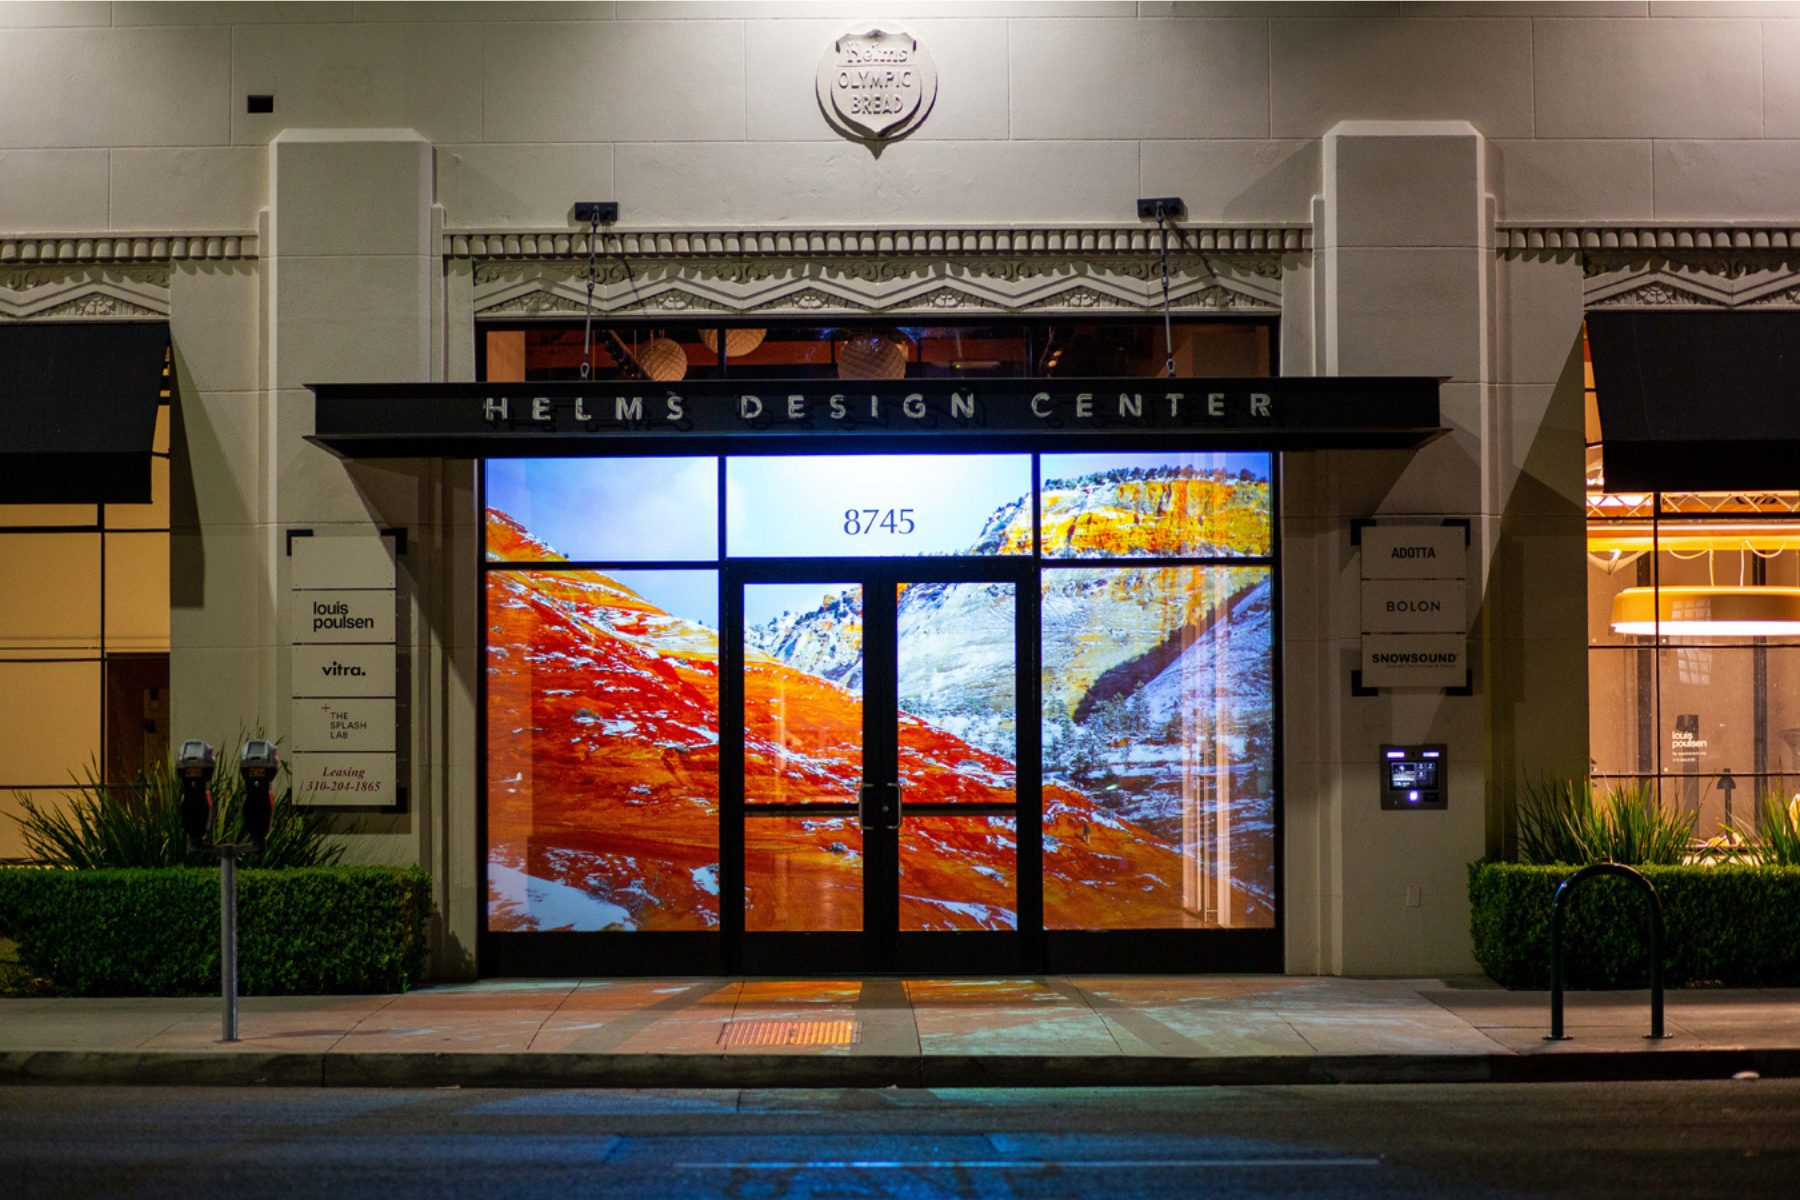 Luciana Abait, Road Trip, 2021. Video Projection of Possibilities Series. Installation view at Helms Design Center, Culver City, California. Courtesy of the artist.